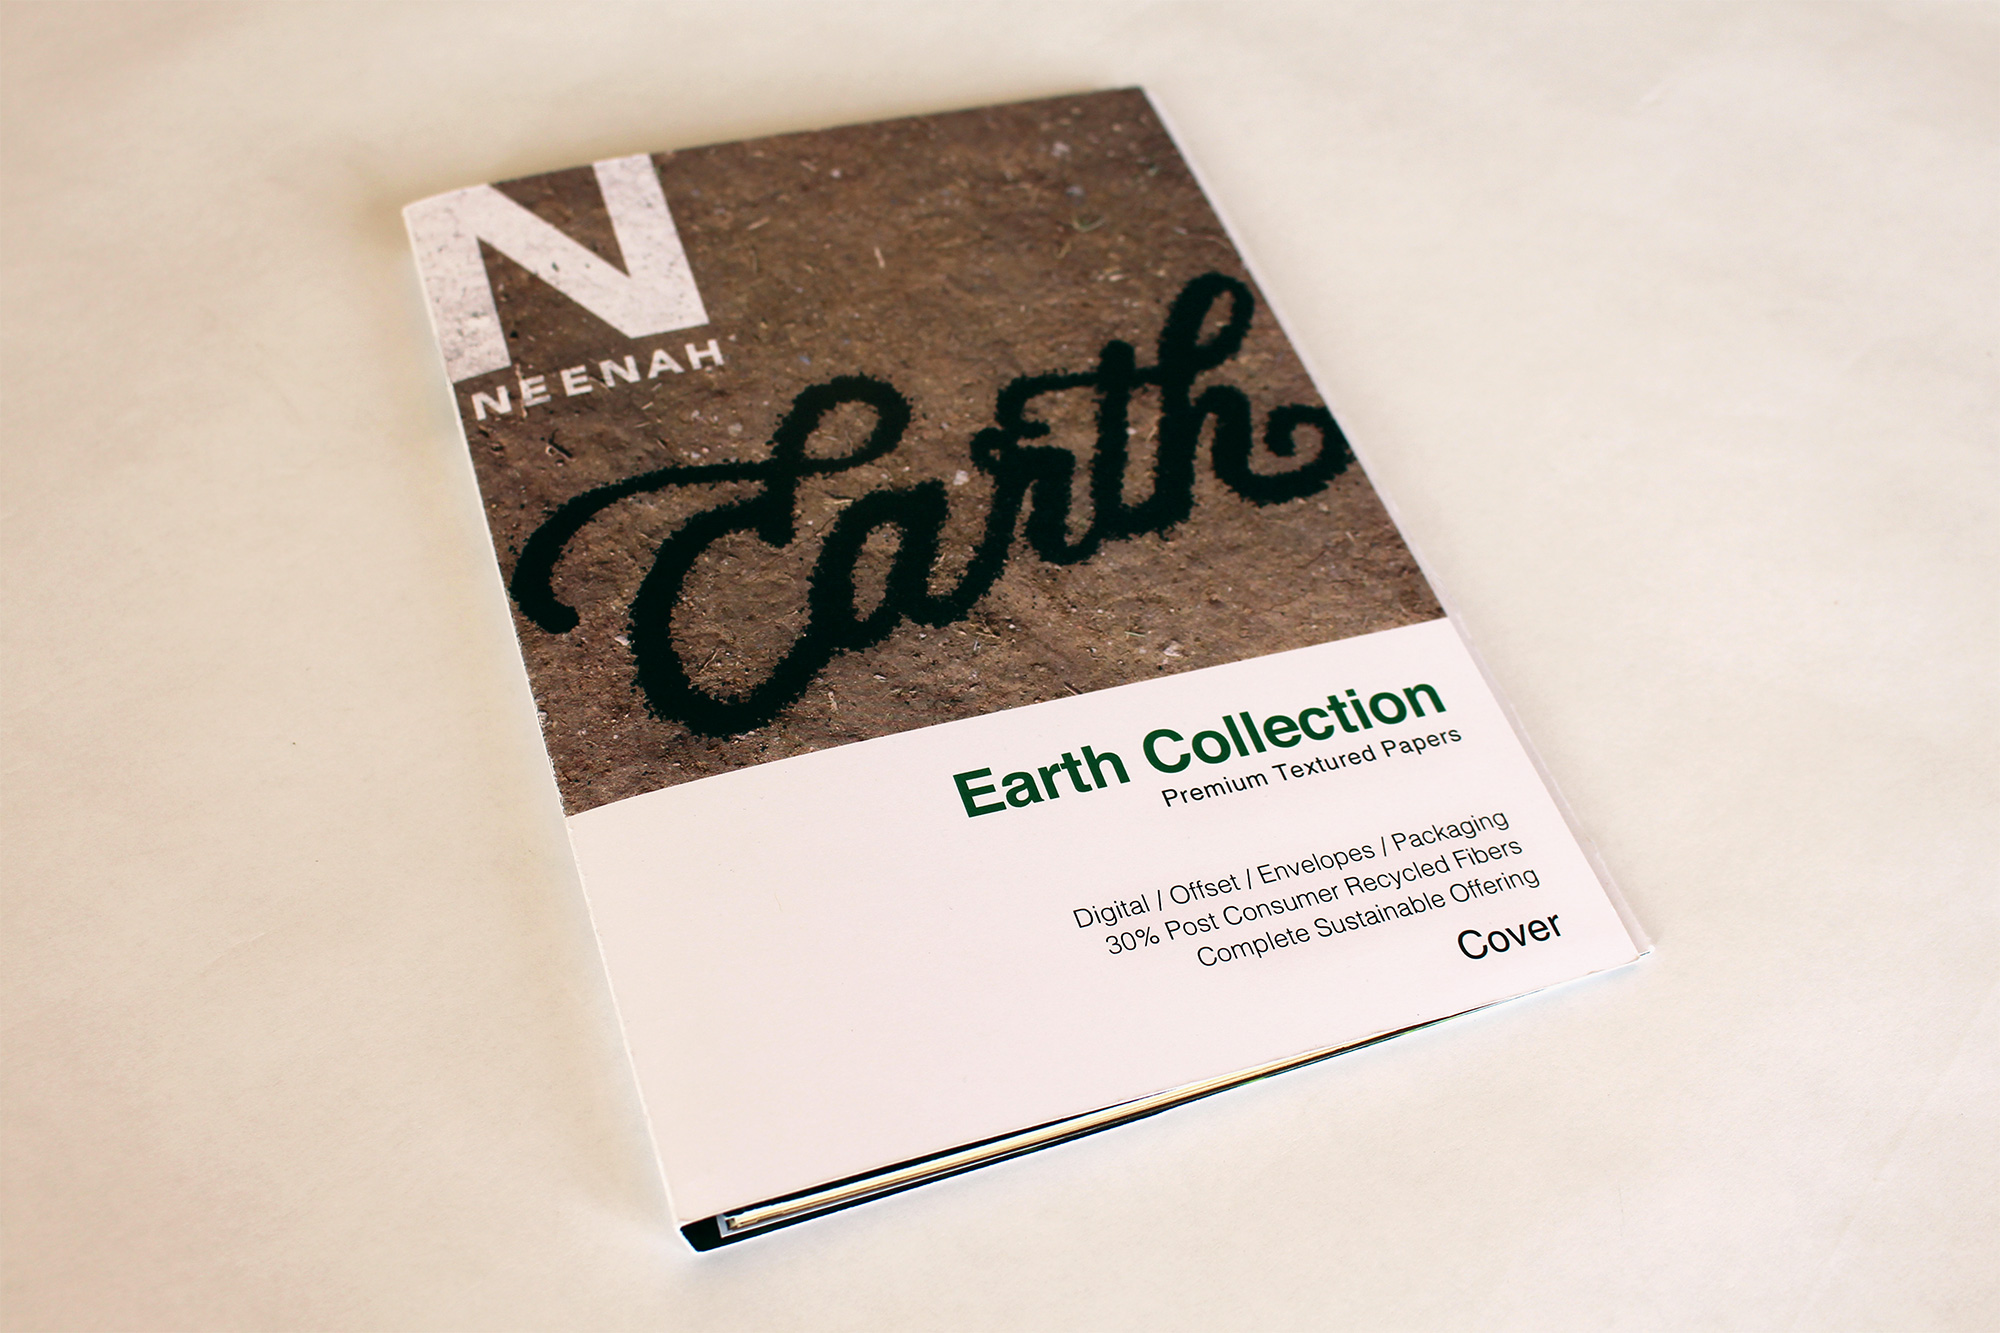 Earth Collection - Paper samples booklet cover